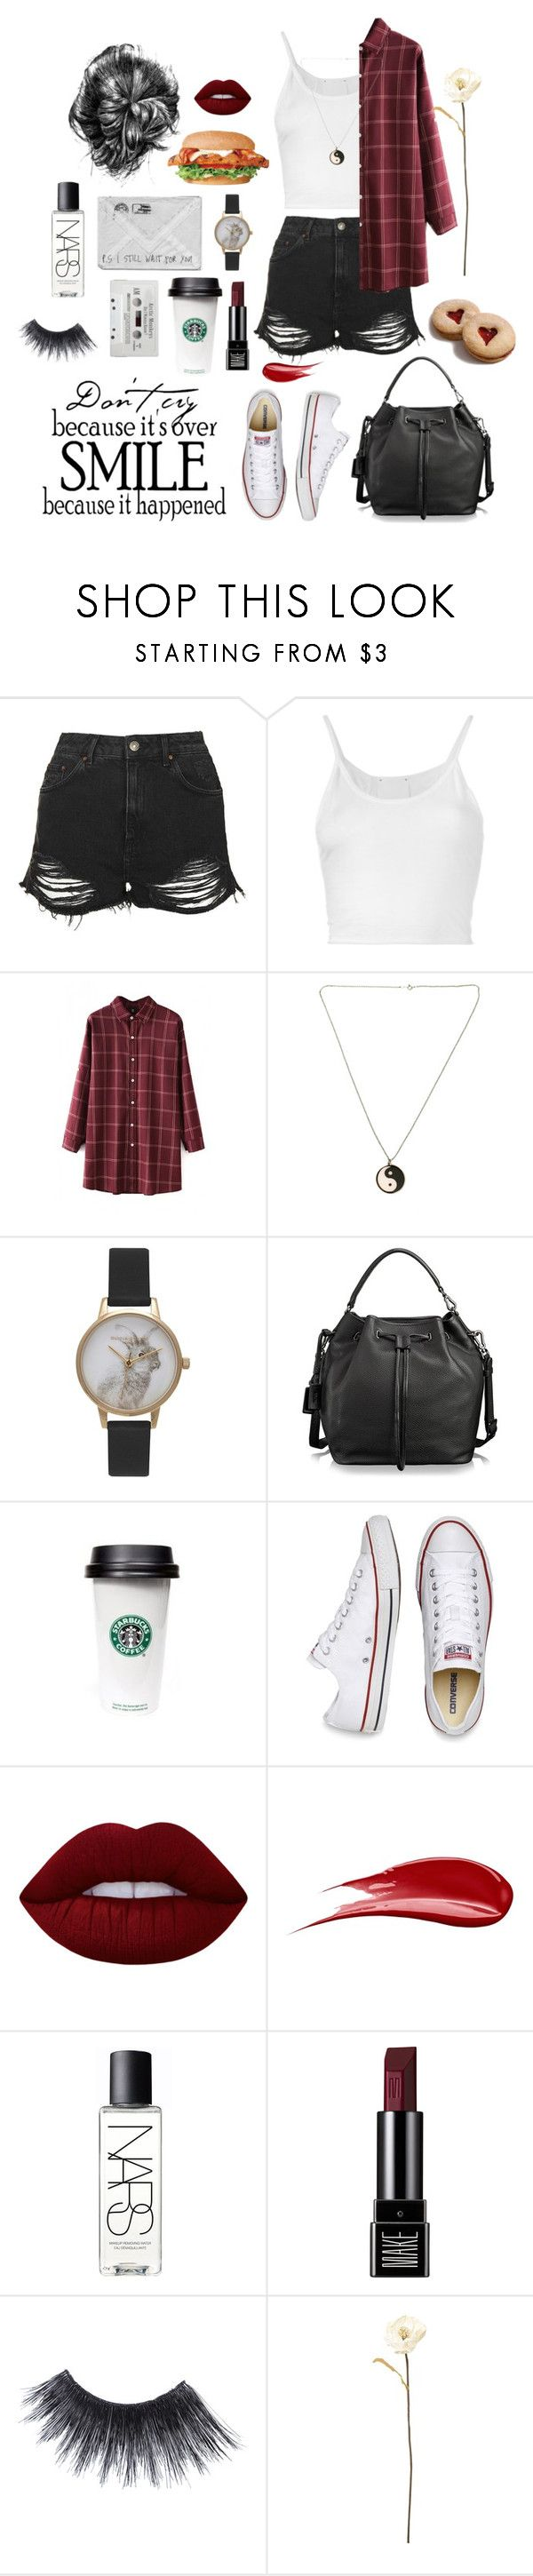 """""""Untitled #123"""" by gina787 ❤ liked on Polyvore featuring Topshop, Lost & Found, Olivia Burton, Tumi, Converse, Lime Crime, Hourglass Cosmetics, NARS Cosmetics, Make and MAKE UP FOR EVER"""